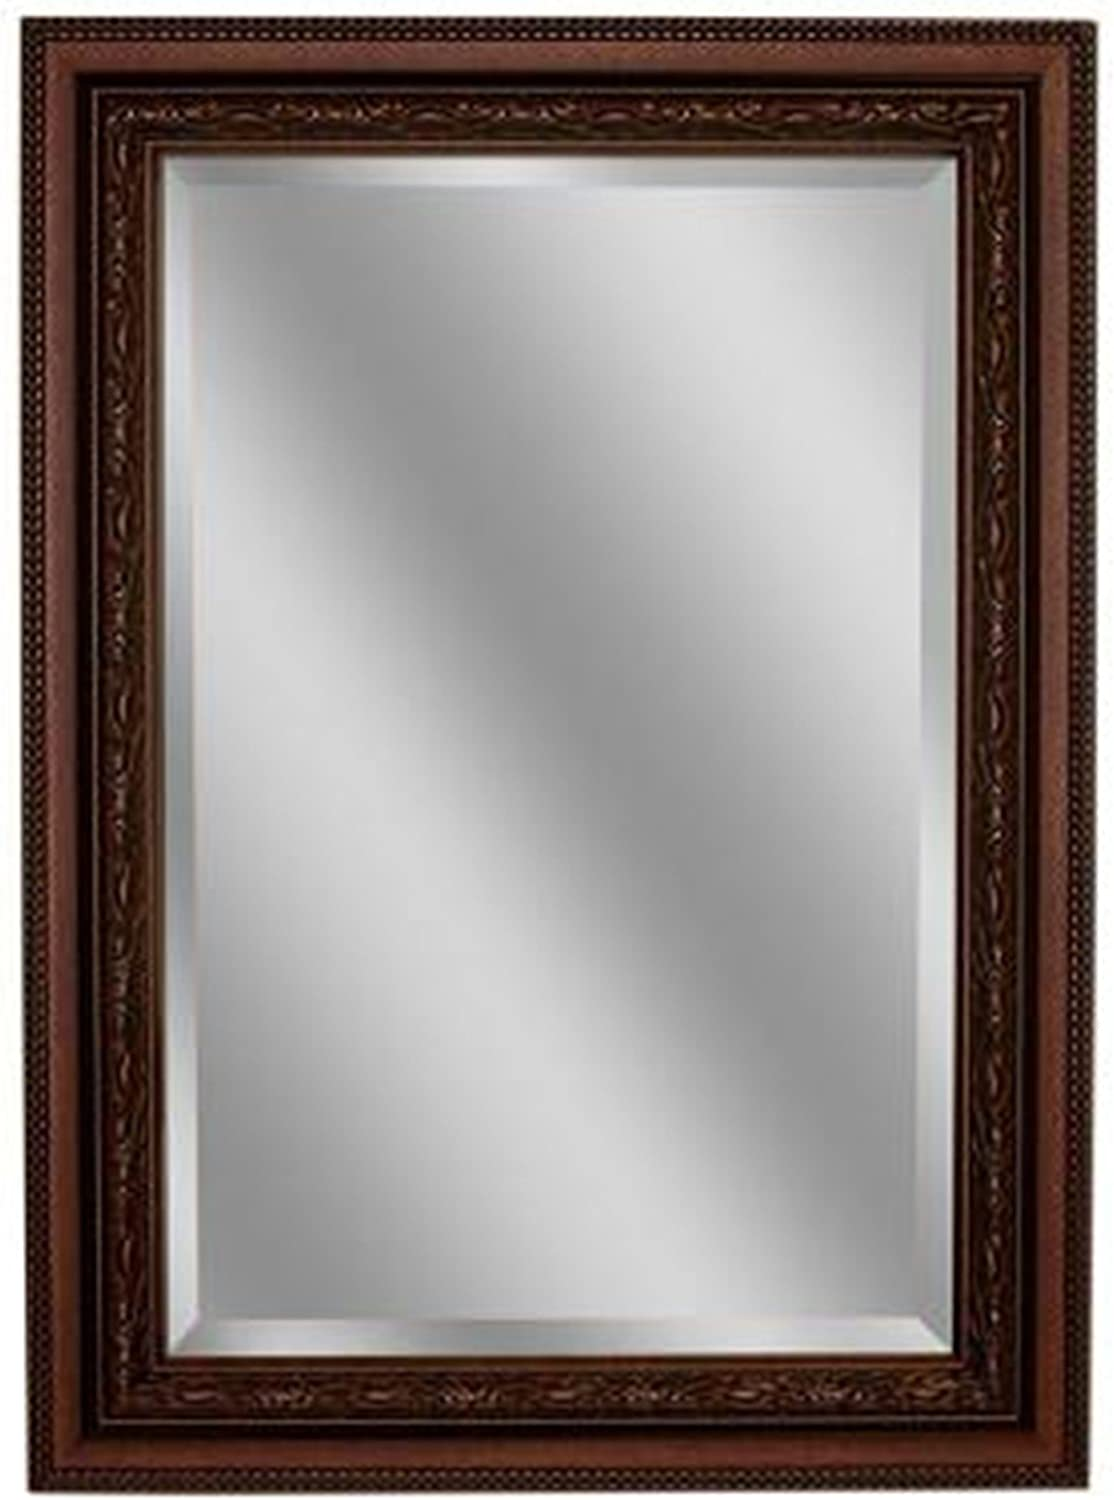 Headwest Addyson Single Framed Wall Mirror in Copper, 30 inches by 36 inches